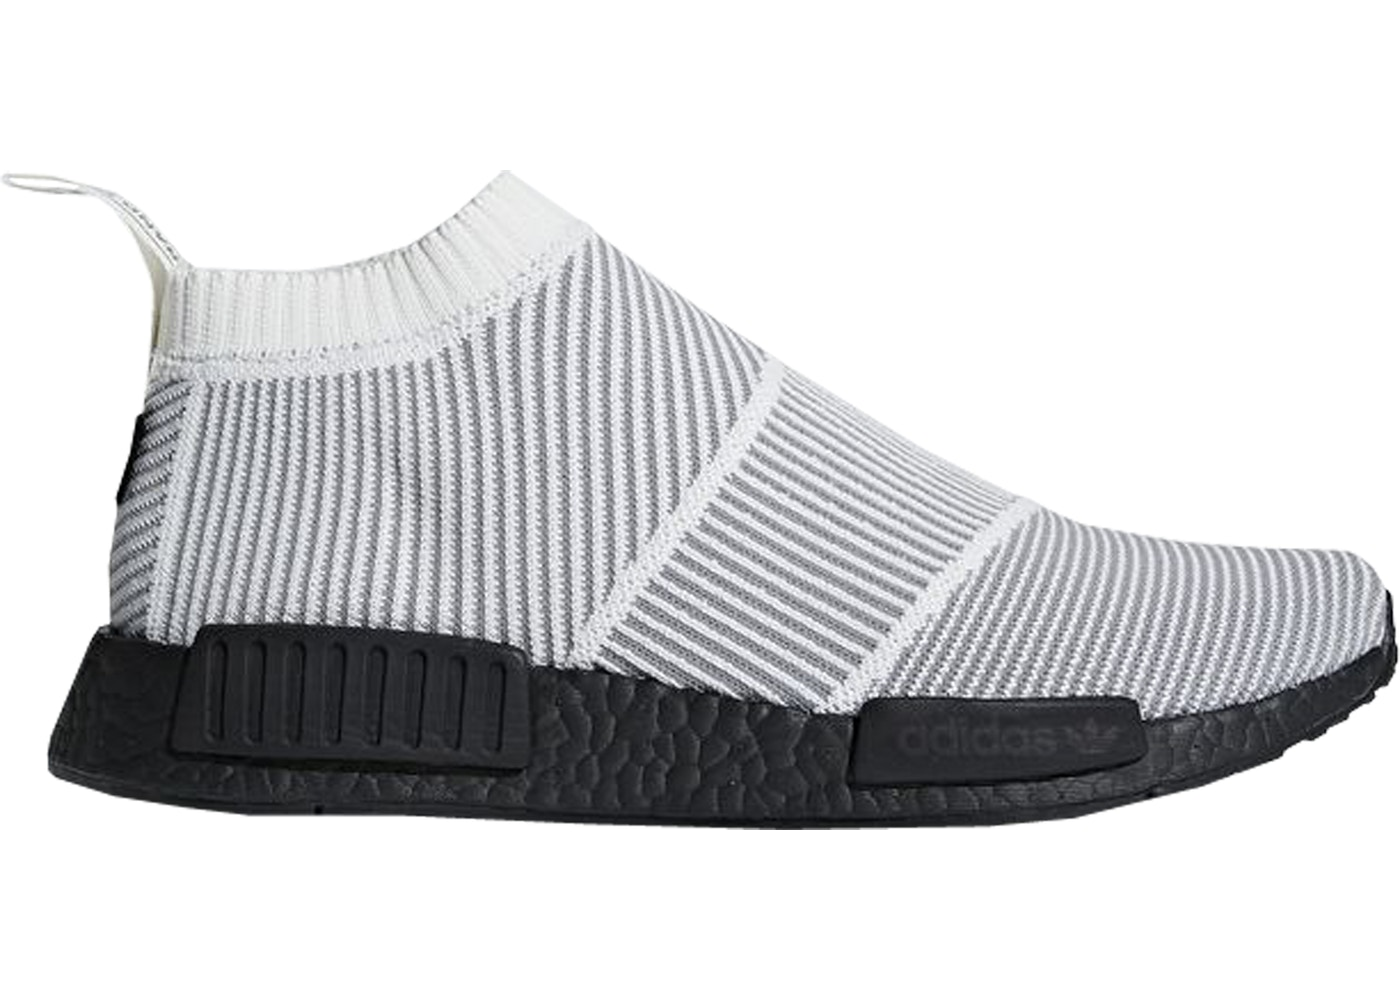 brand new 3fd1e 9c3d5 adidas NMD CS1 Gore-tex White - BY9404